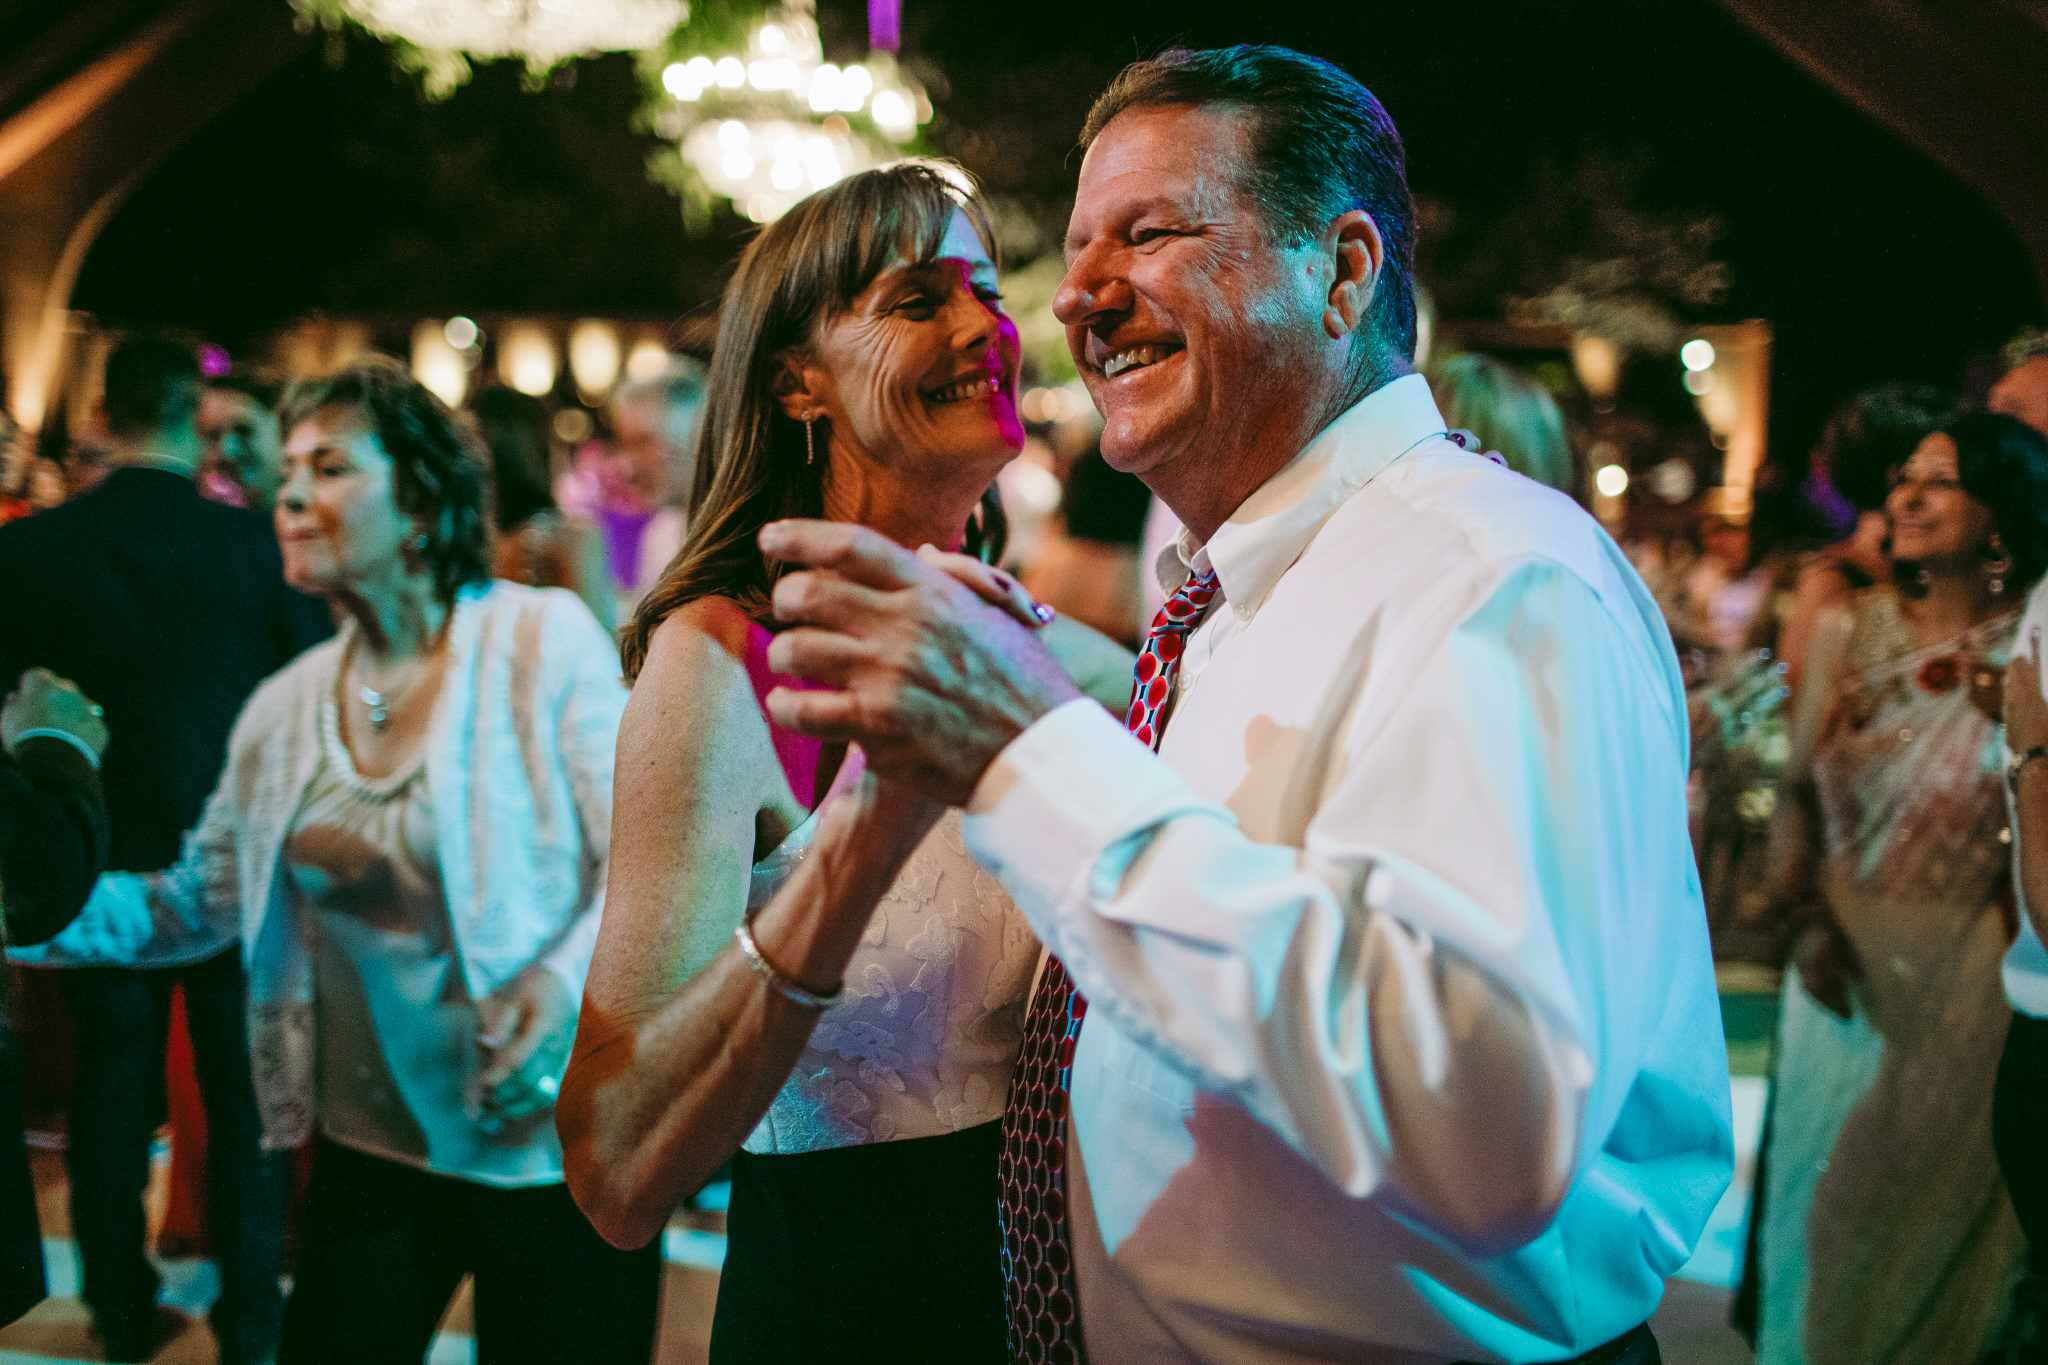 san diego wedding   photographer | old couple wearing white while dancing with crowd in   background